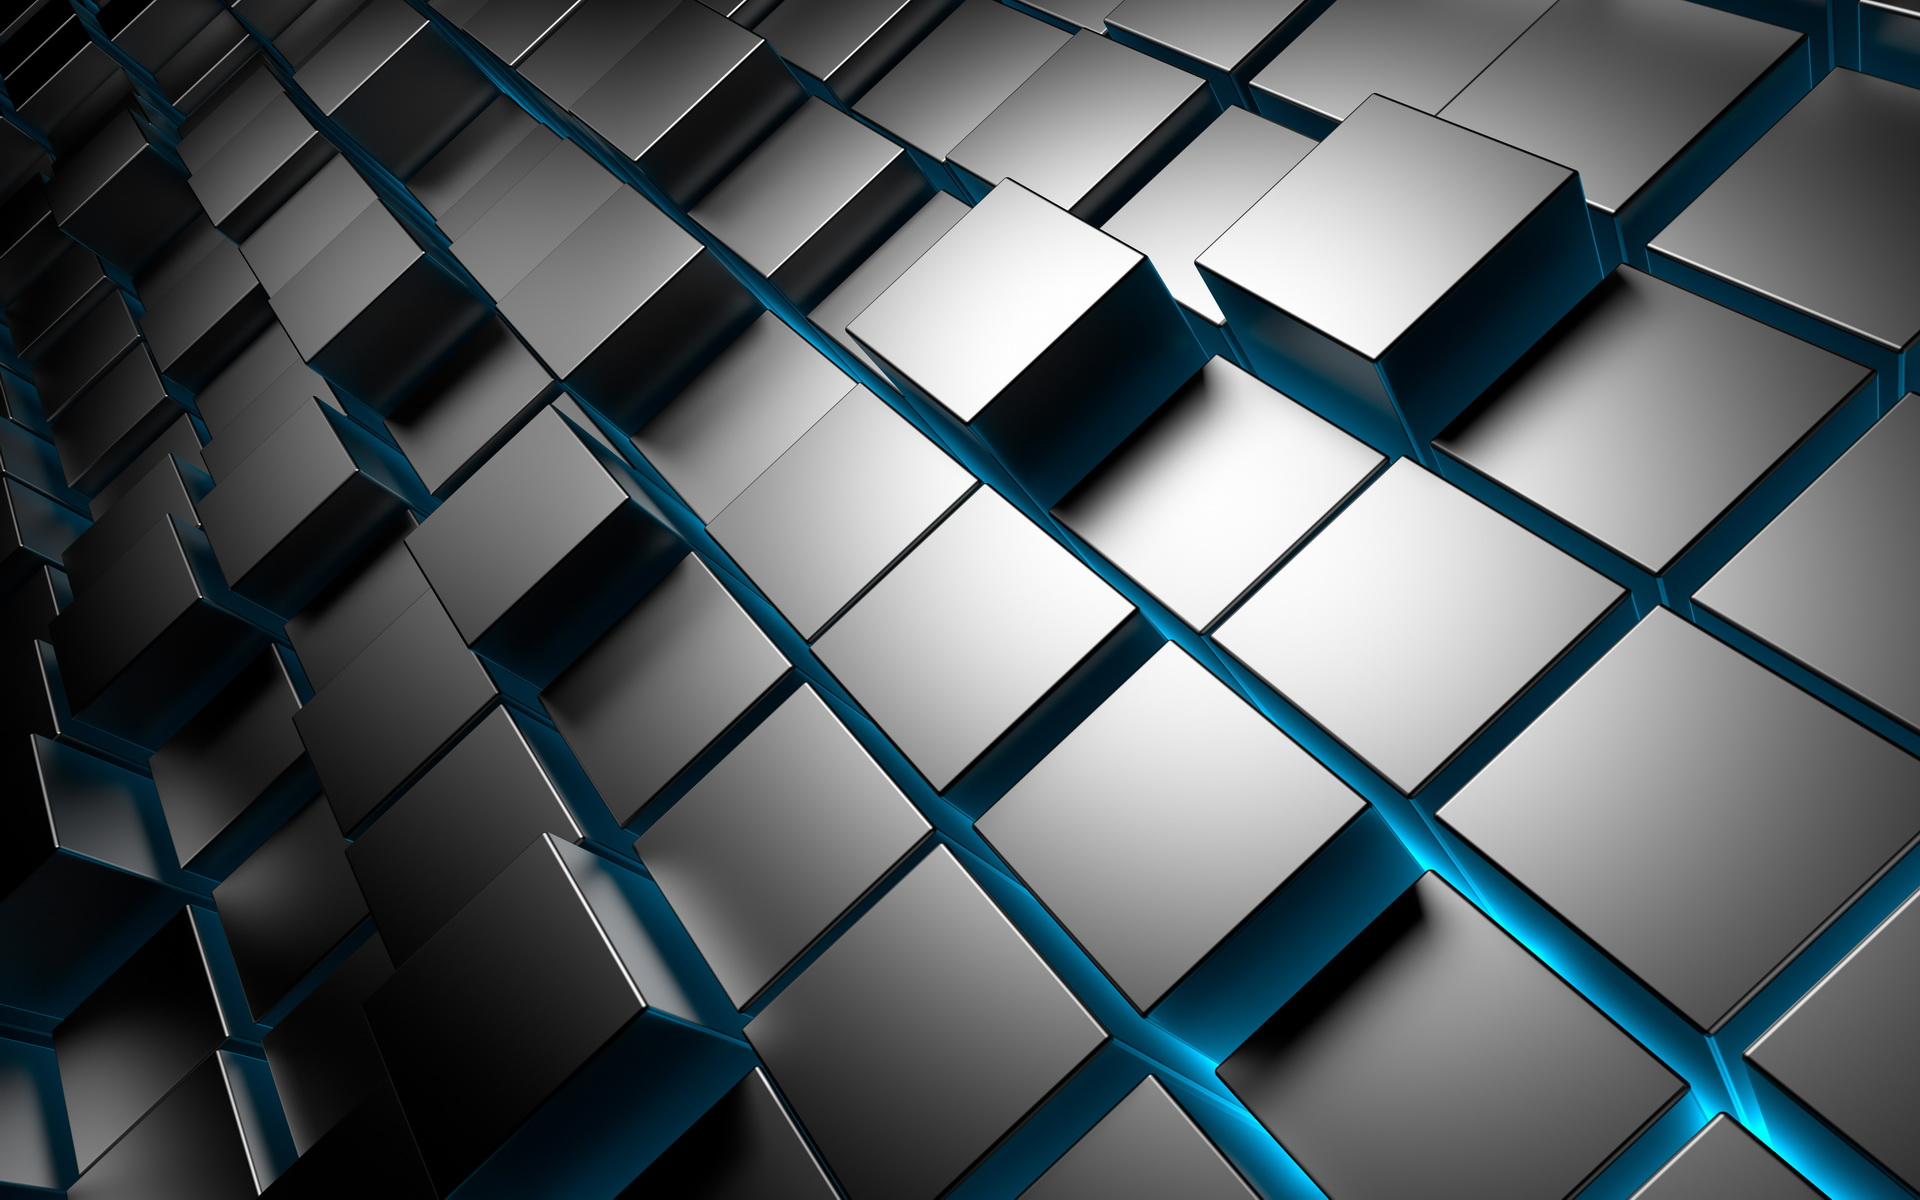 Wallpaper Background Gallery: Cube Wallpapers, Pictures, Images